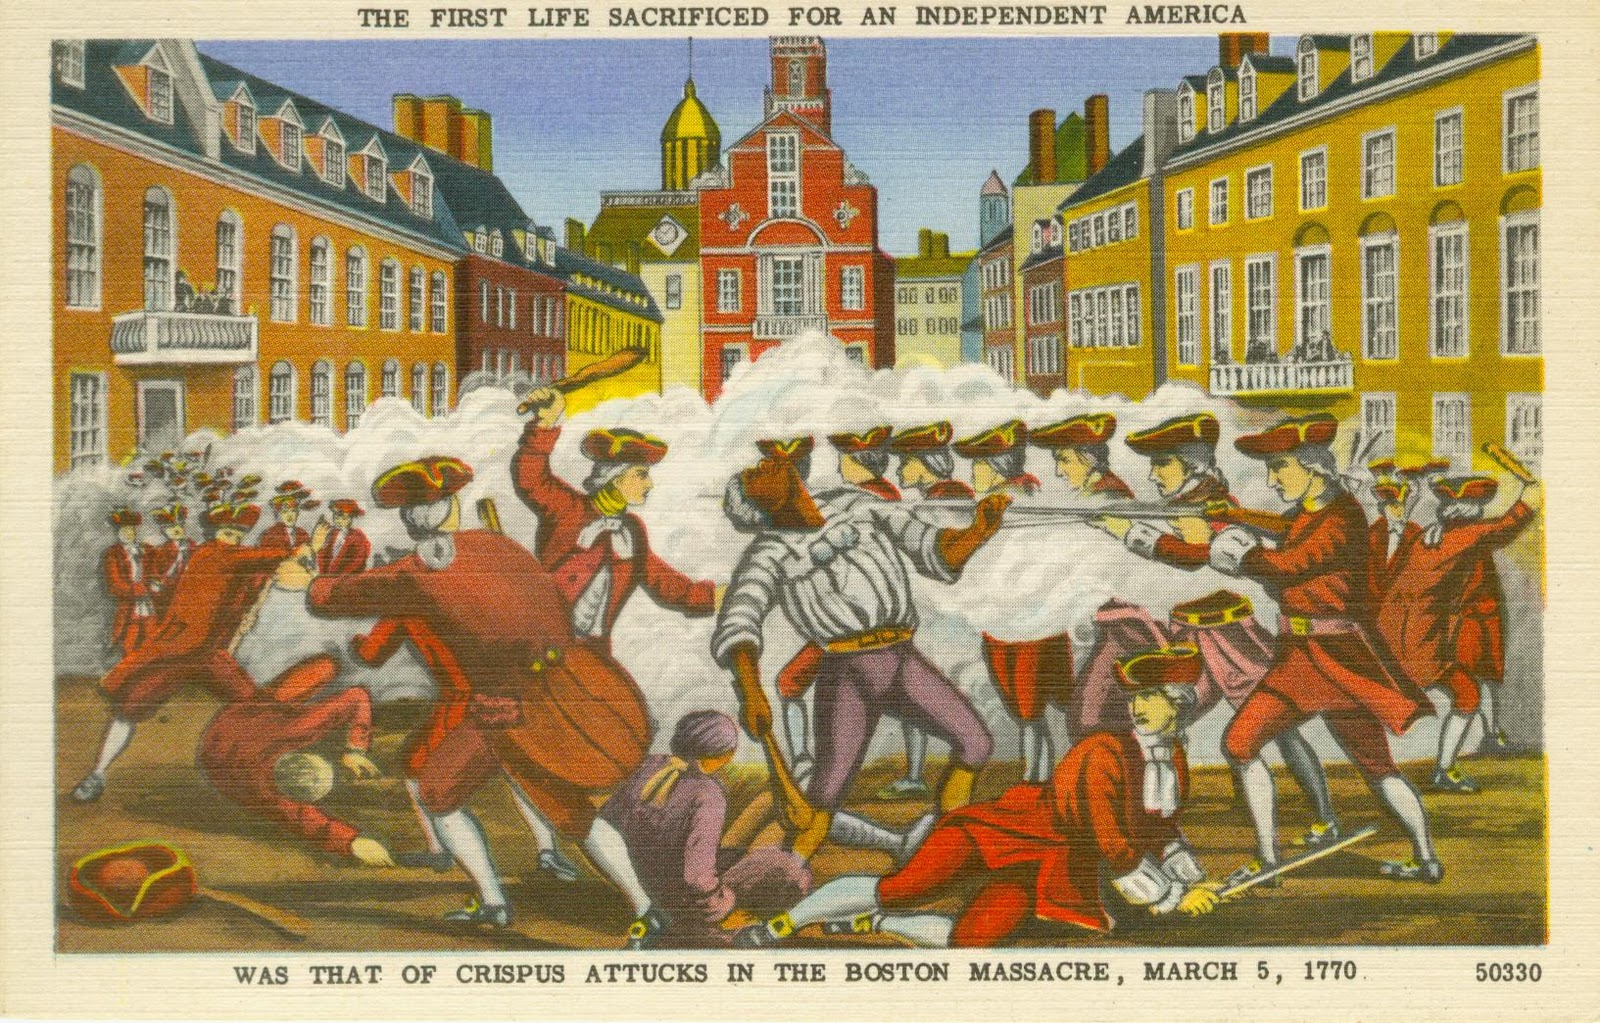 While Crispus Attucks was one of the men killed in the